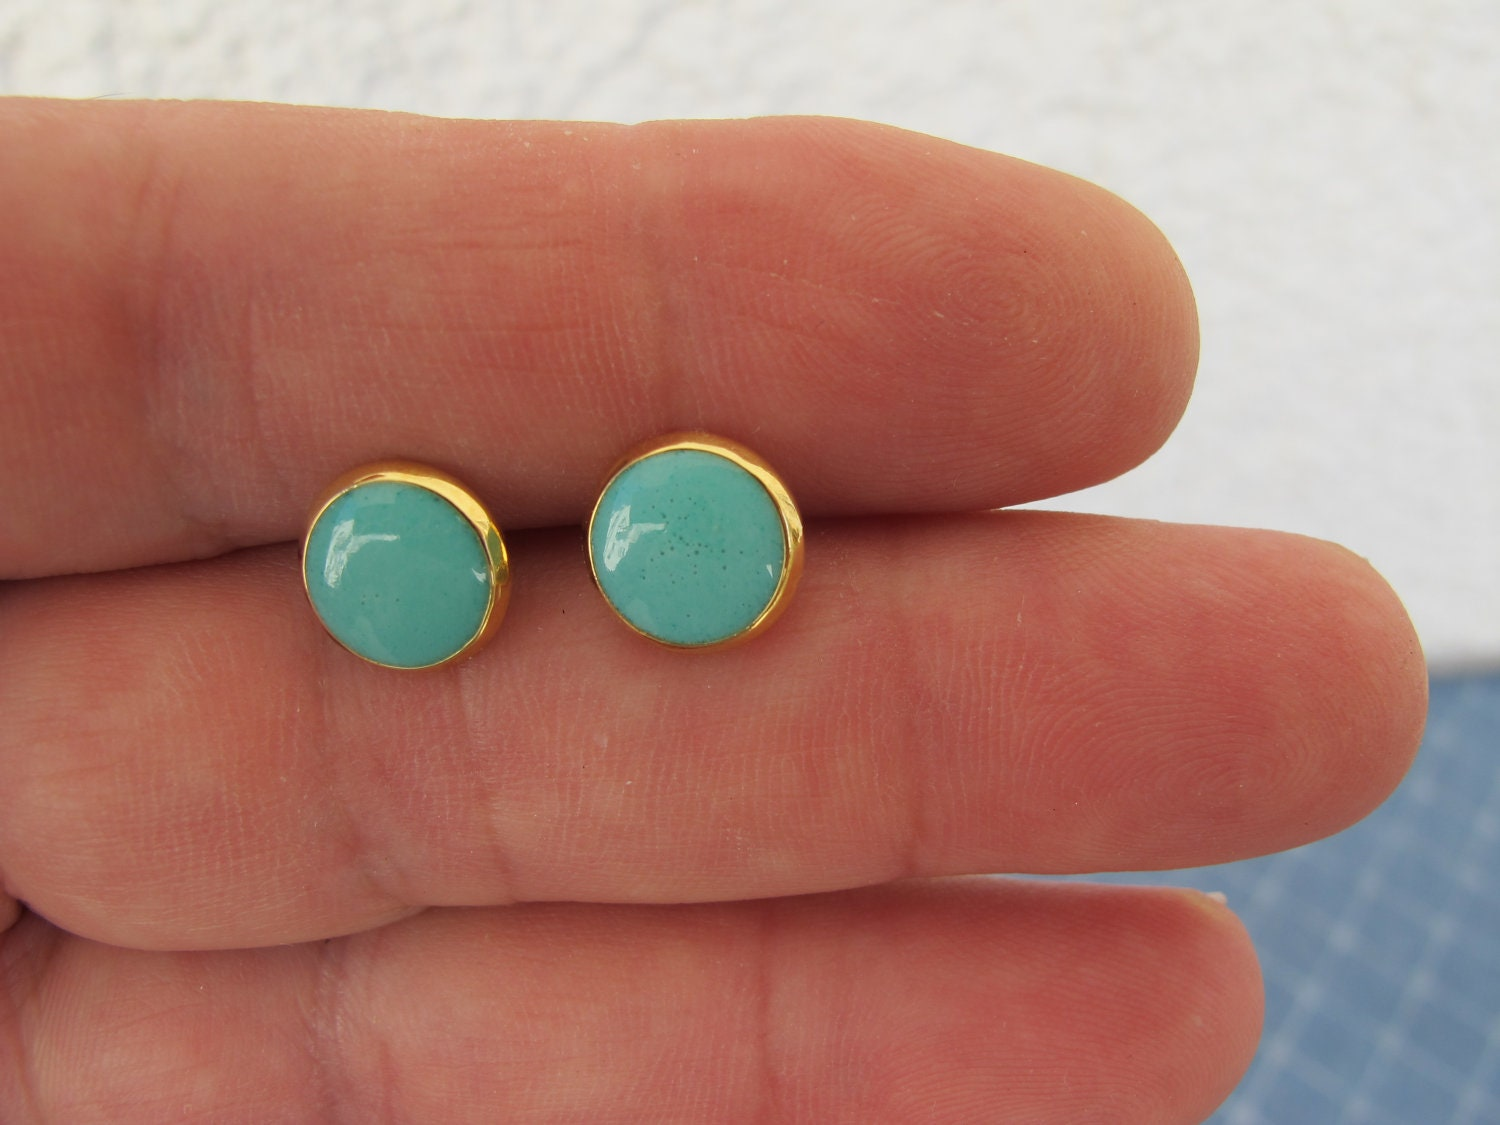 turquoise stud earrings gold 8 or 6mm post earrings turquoise. Black Bedroom Furniture Sets. Home Design Ideas